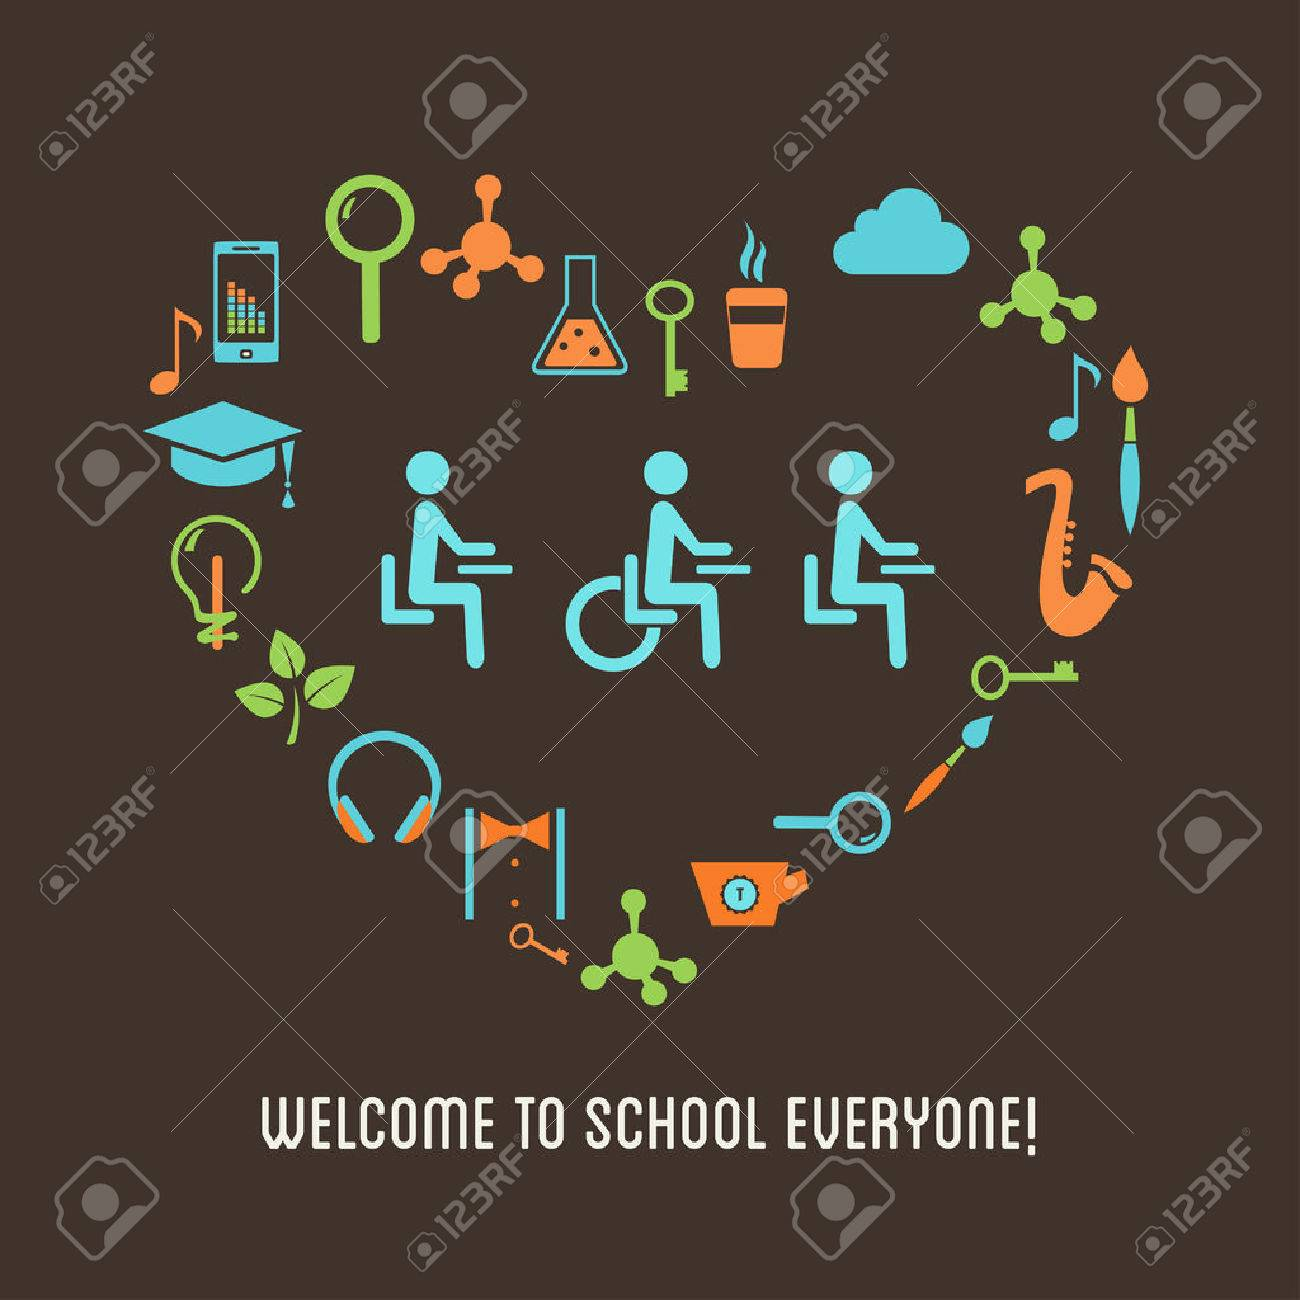 Special Needs Students Inclusion Education Concept - 59990386